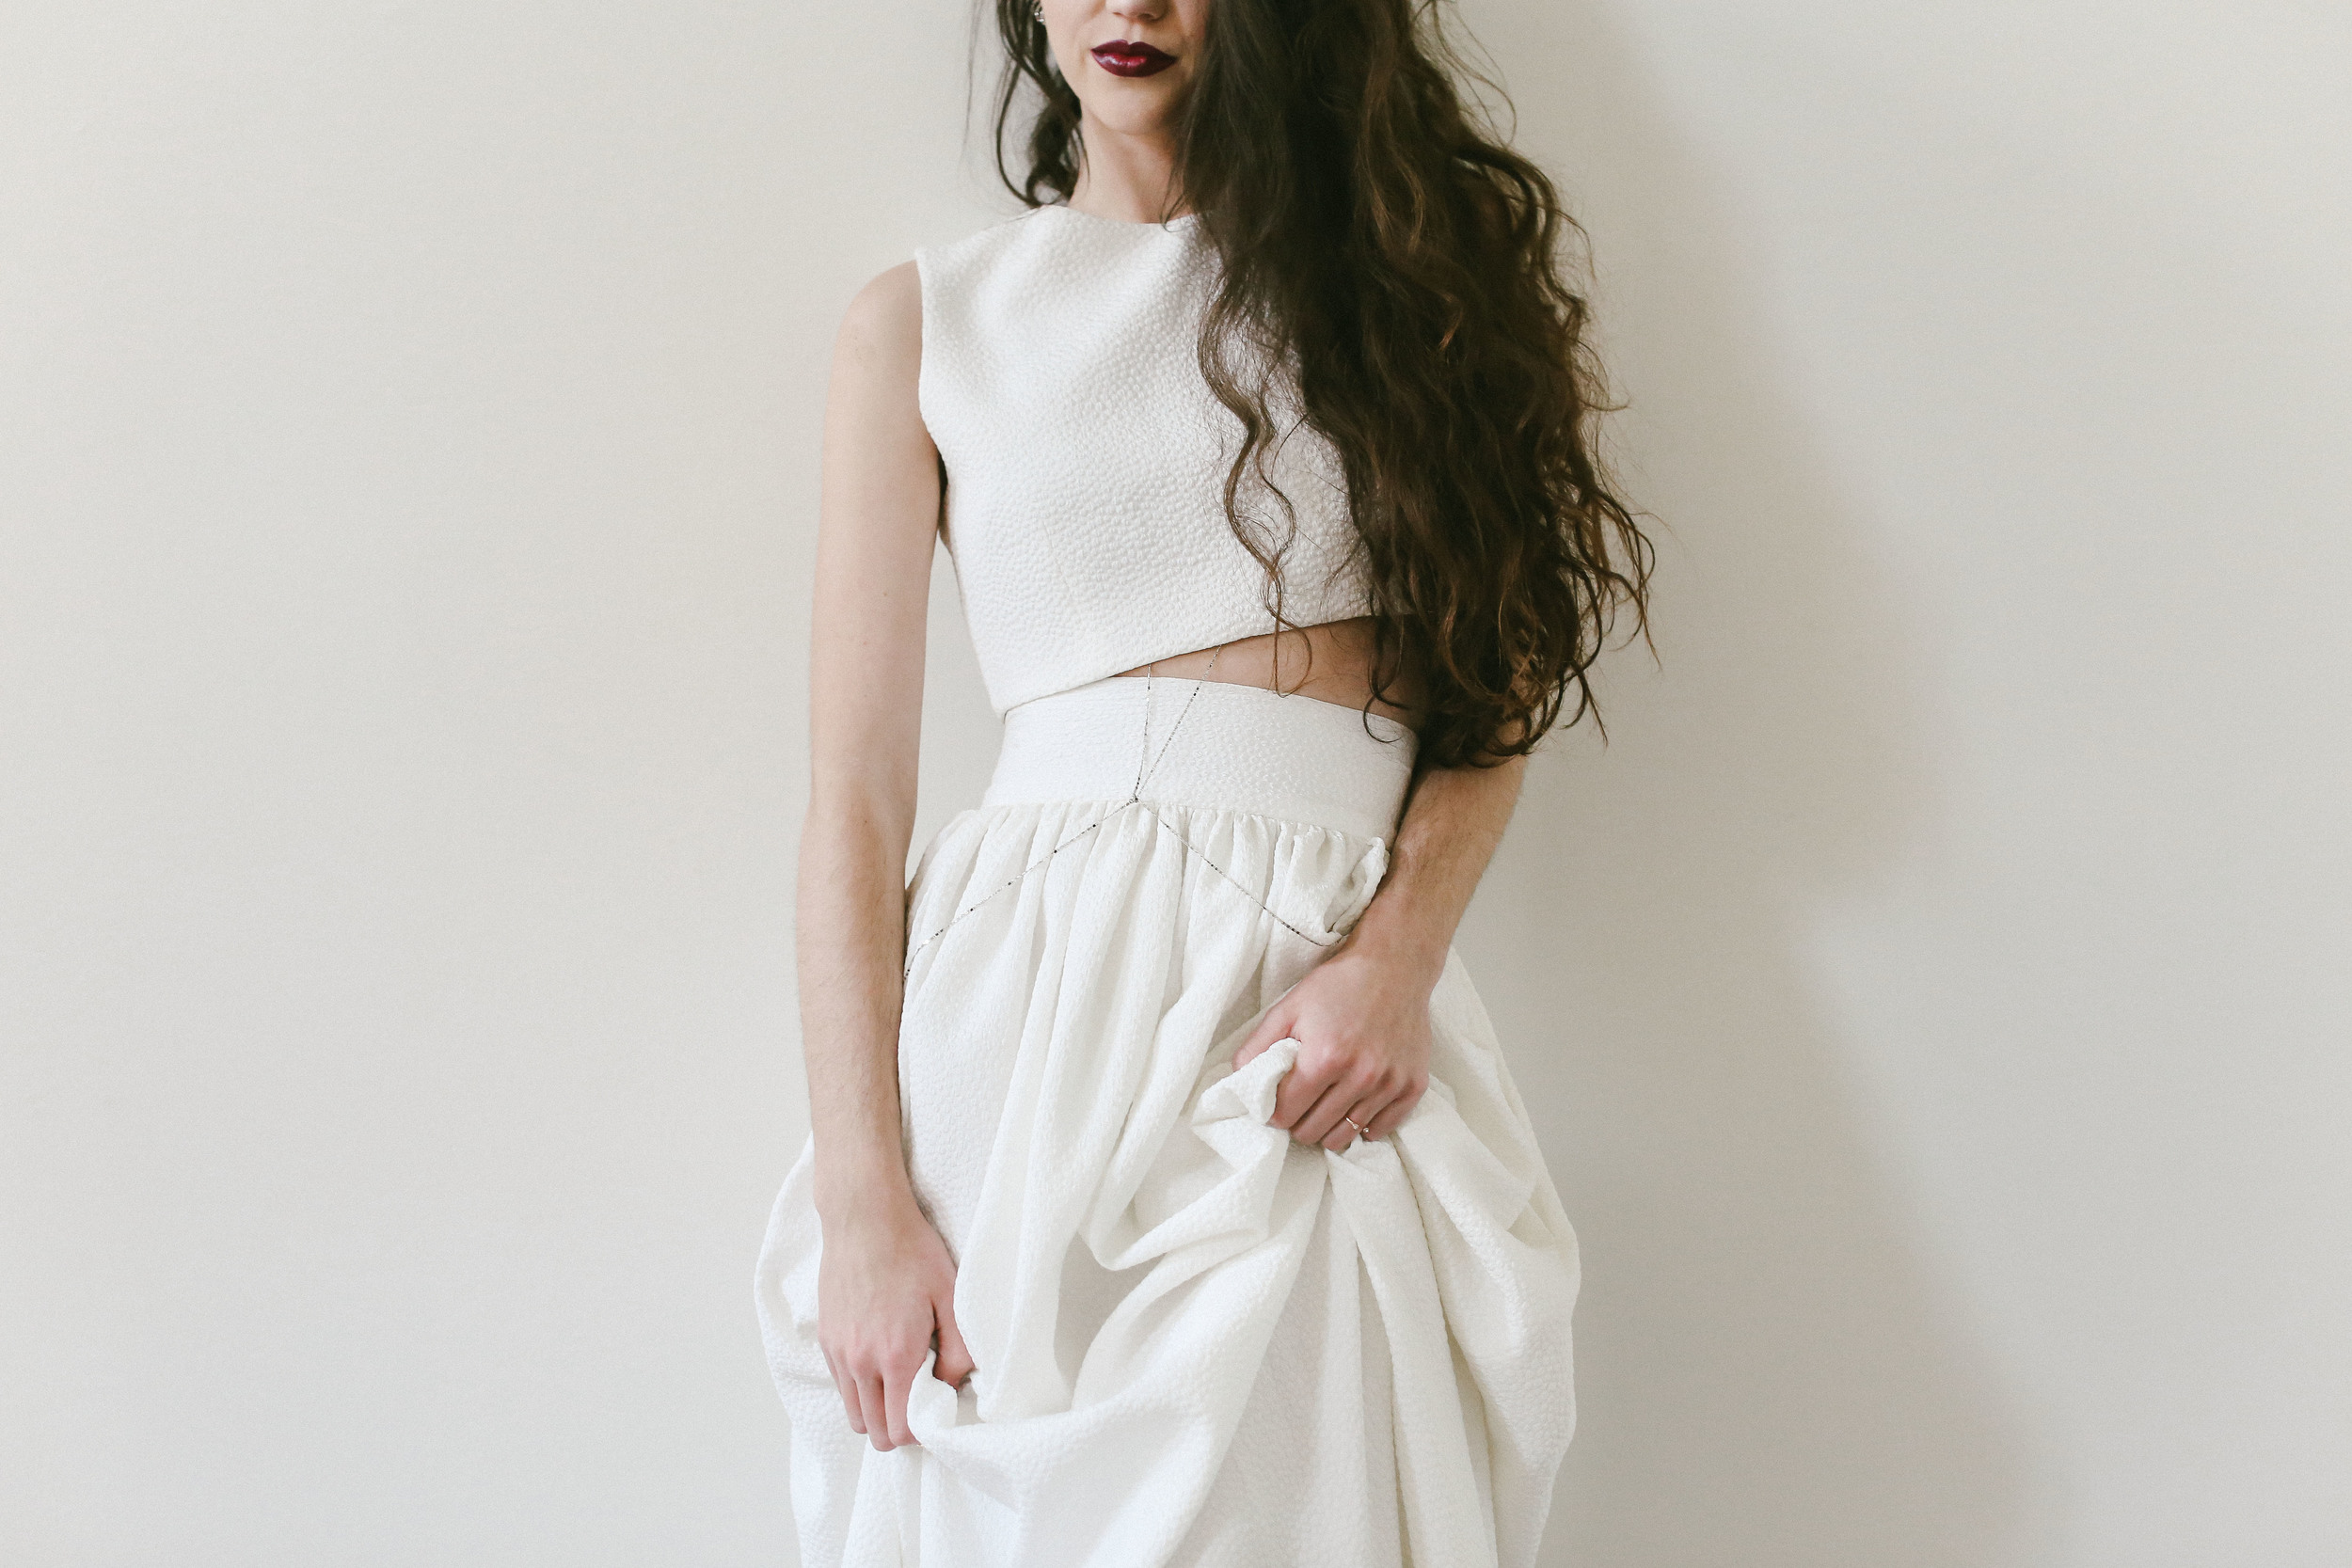 finery-boutique-huntsivlle-alabama-bohemian-wedding-shop-odylyne-the-ceremony-yolan-cris-bride-bridal-yaki-ravid-berta-calla-blanche-lookbook-cool-nashville-tenessee-crop-top-two-piece